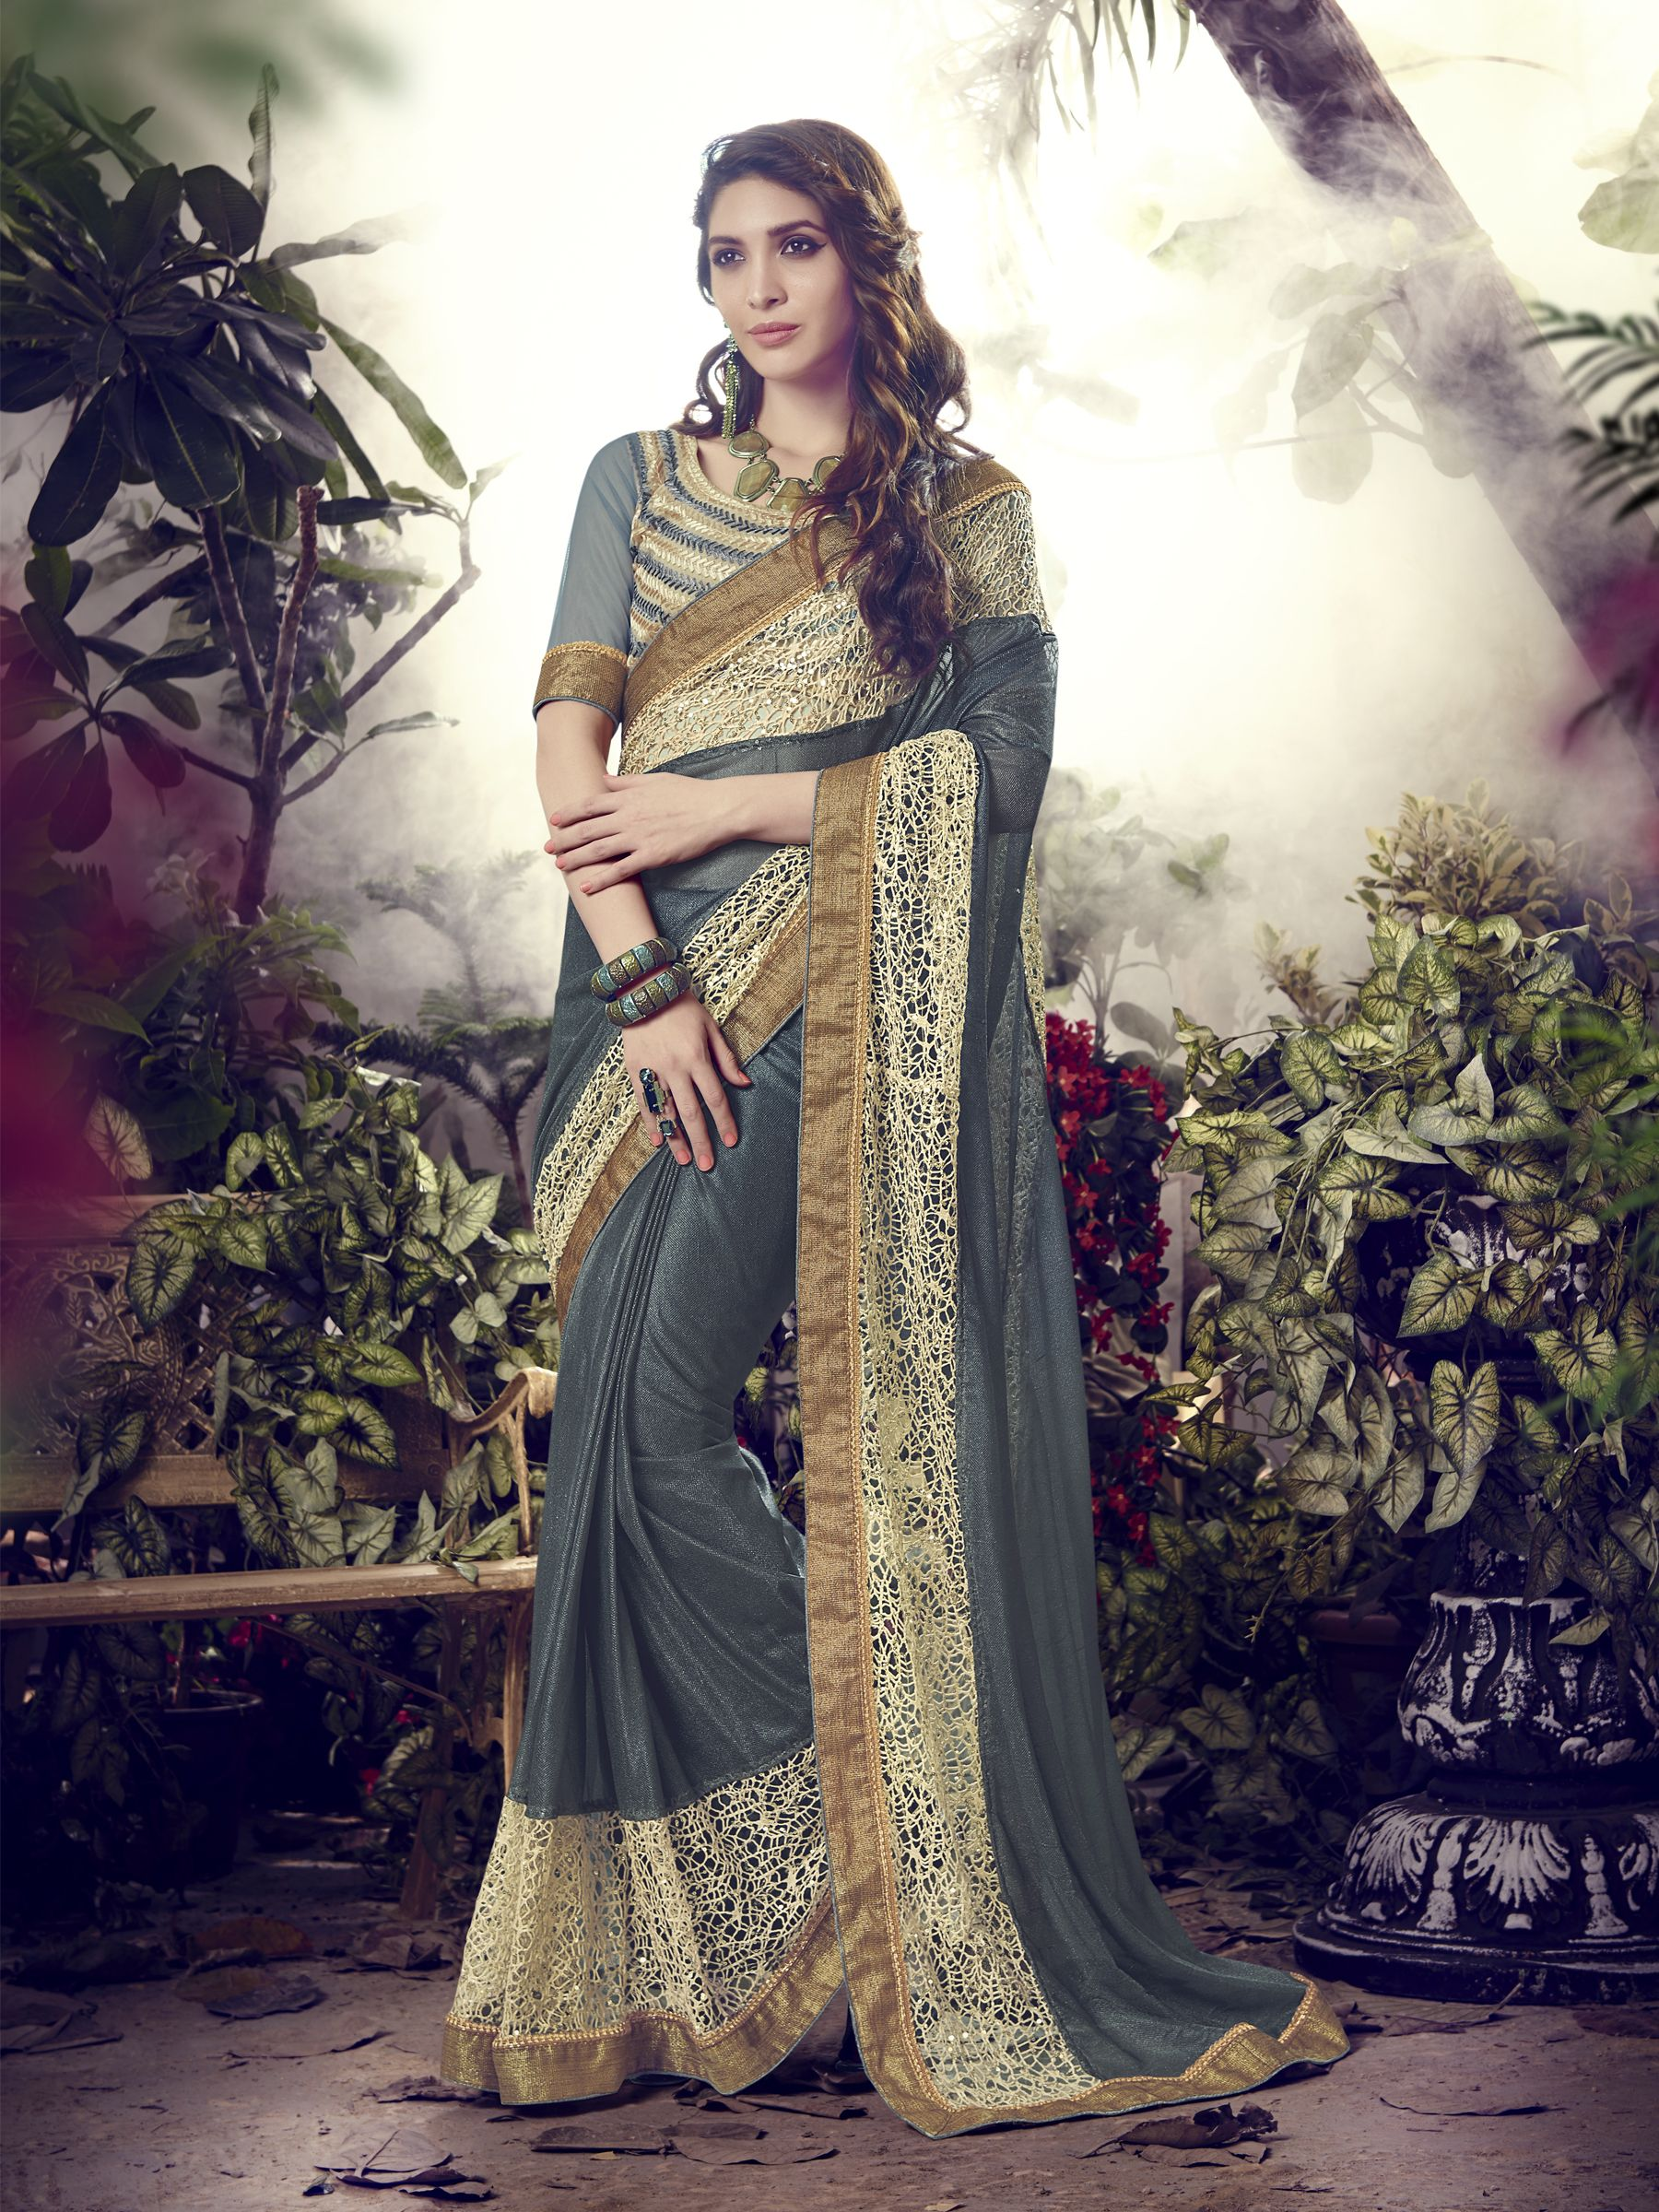 http://www.thatsend.com/shopping/lp/fvp/TESG230784/i/TE300642/iu/gray-lycra-traditional-saree  Gray Lycra Traditional Saree Apparel Pattern Embroidered. Work Embroidery, Border Lace. Blouse Piece Yes. Occasion Festive, Reception. Top Color Gray.